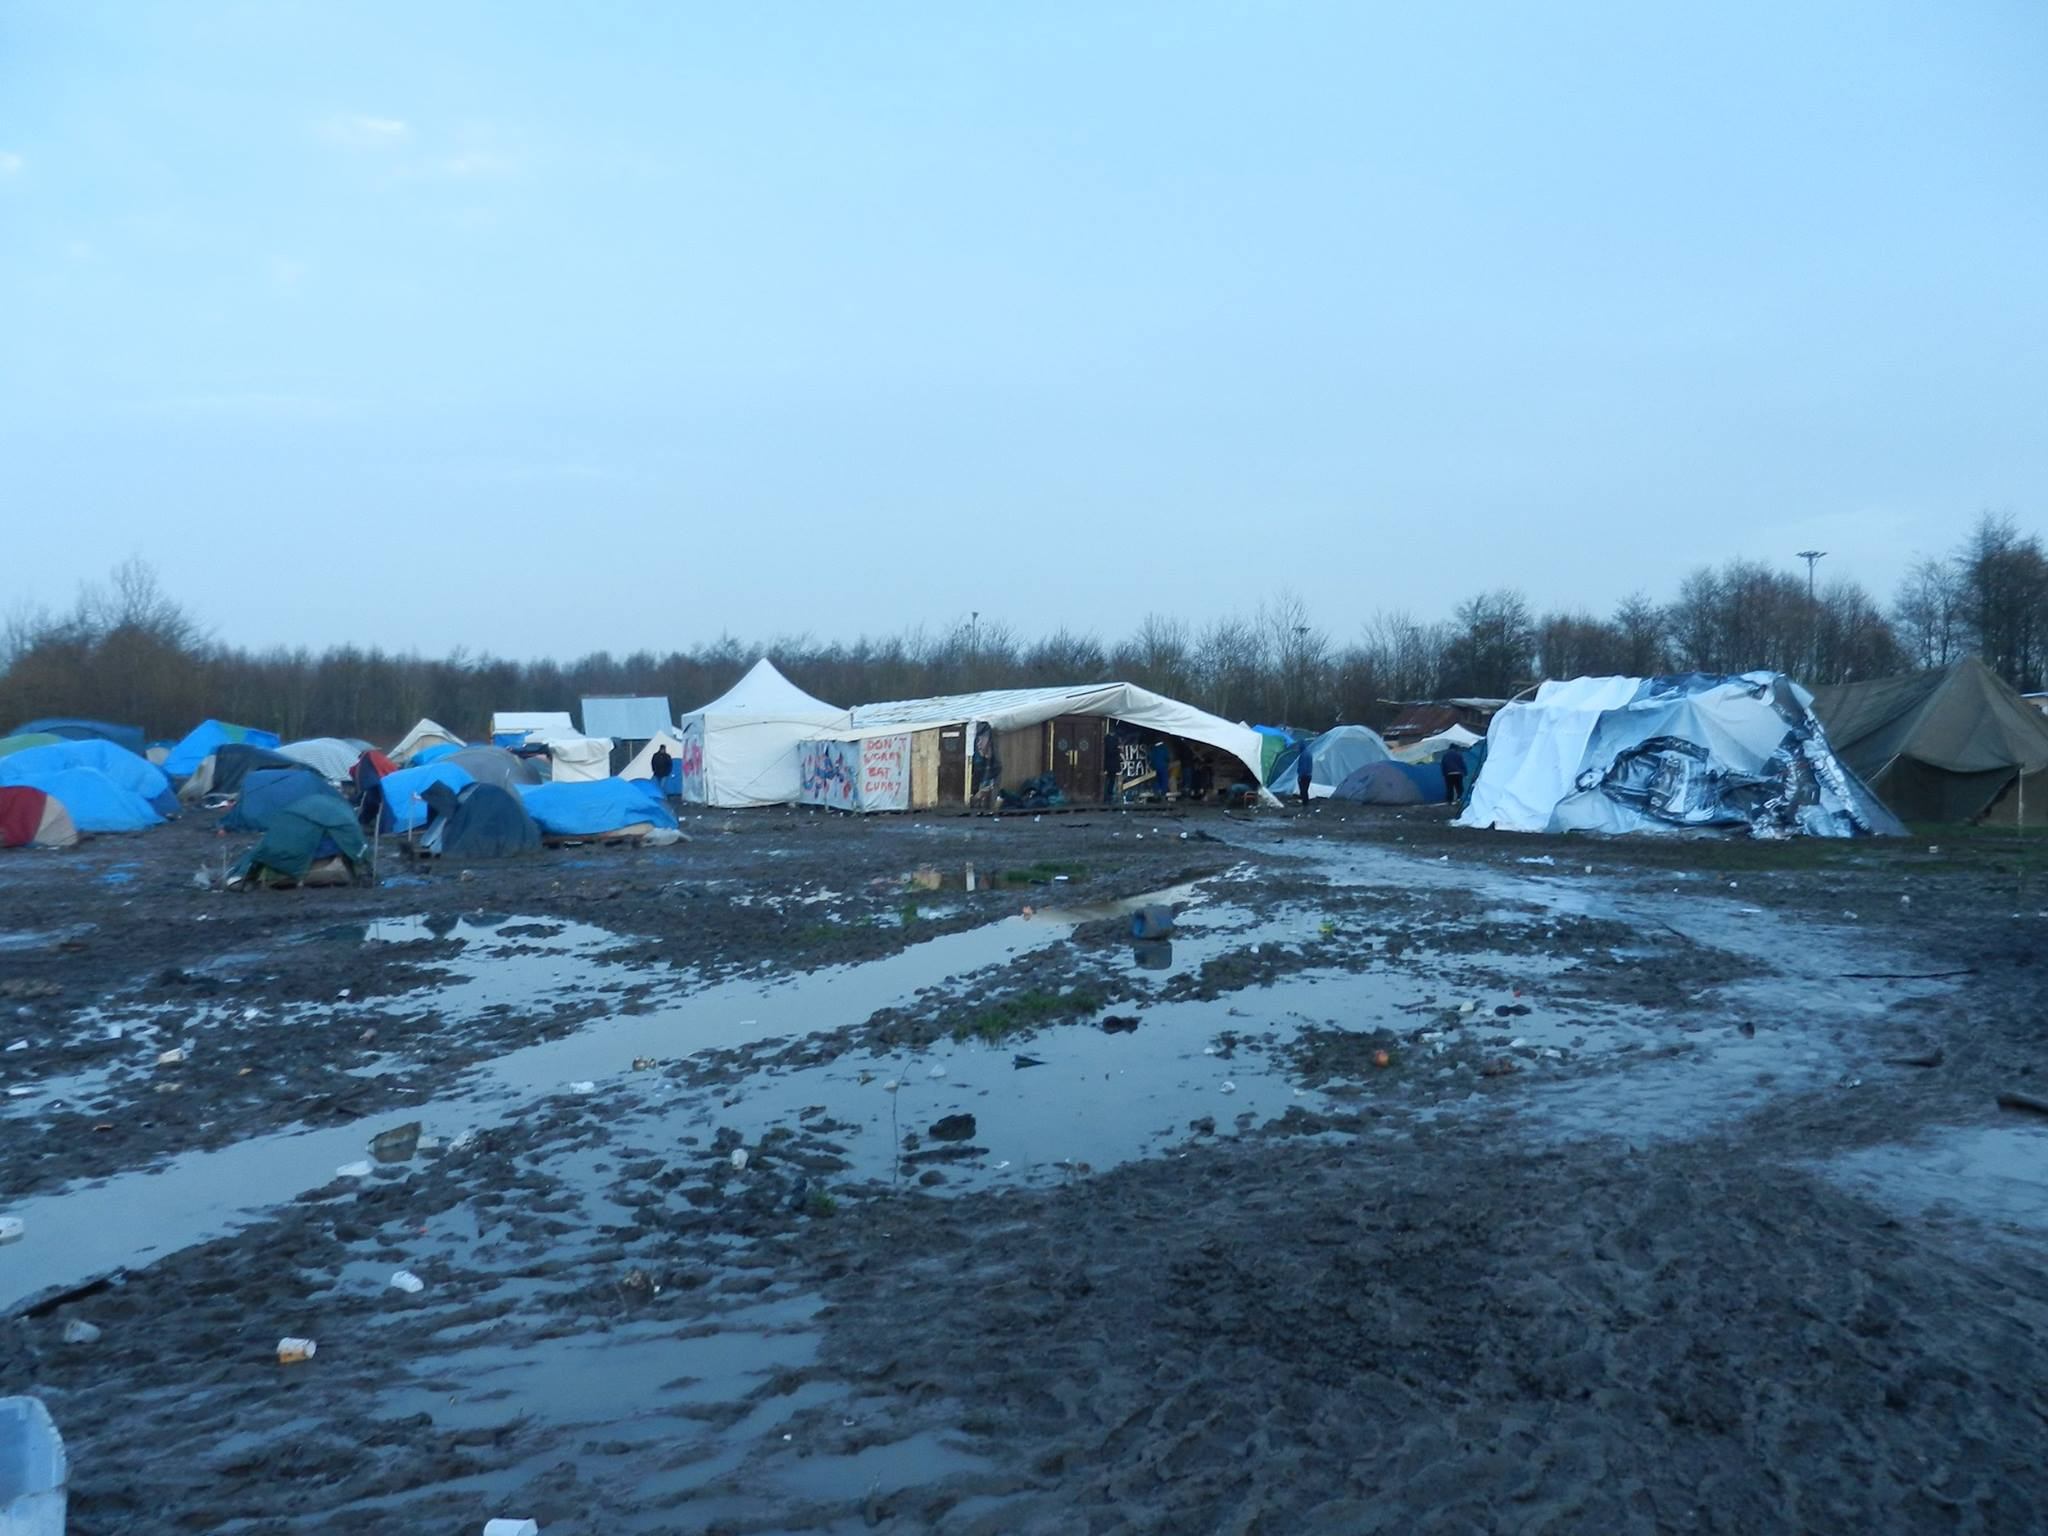 REPORT: The dark reality of Dunkirk's refugee camp